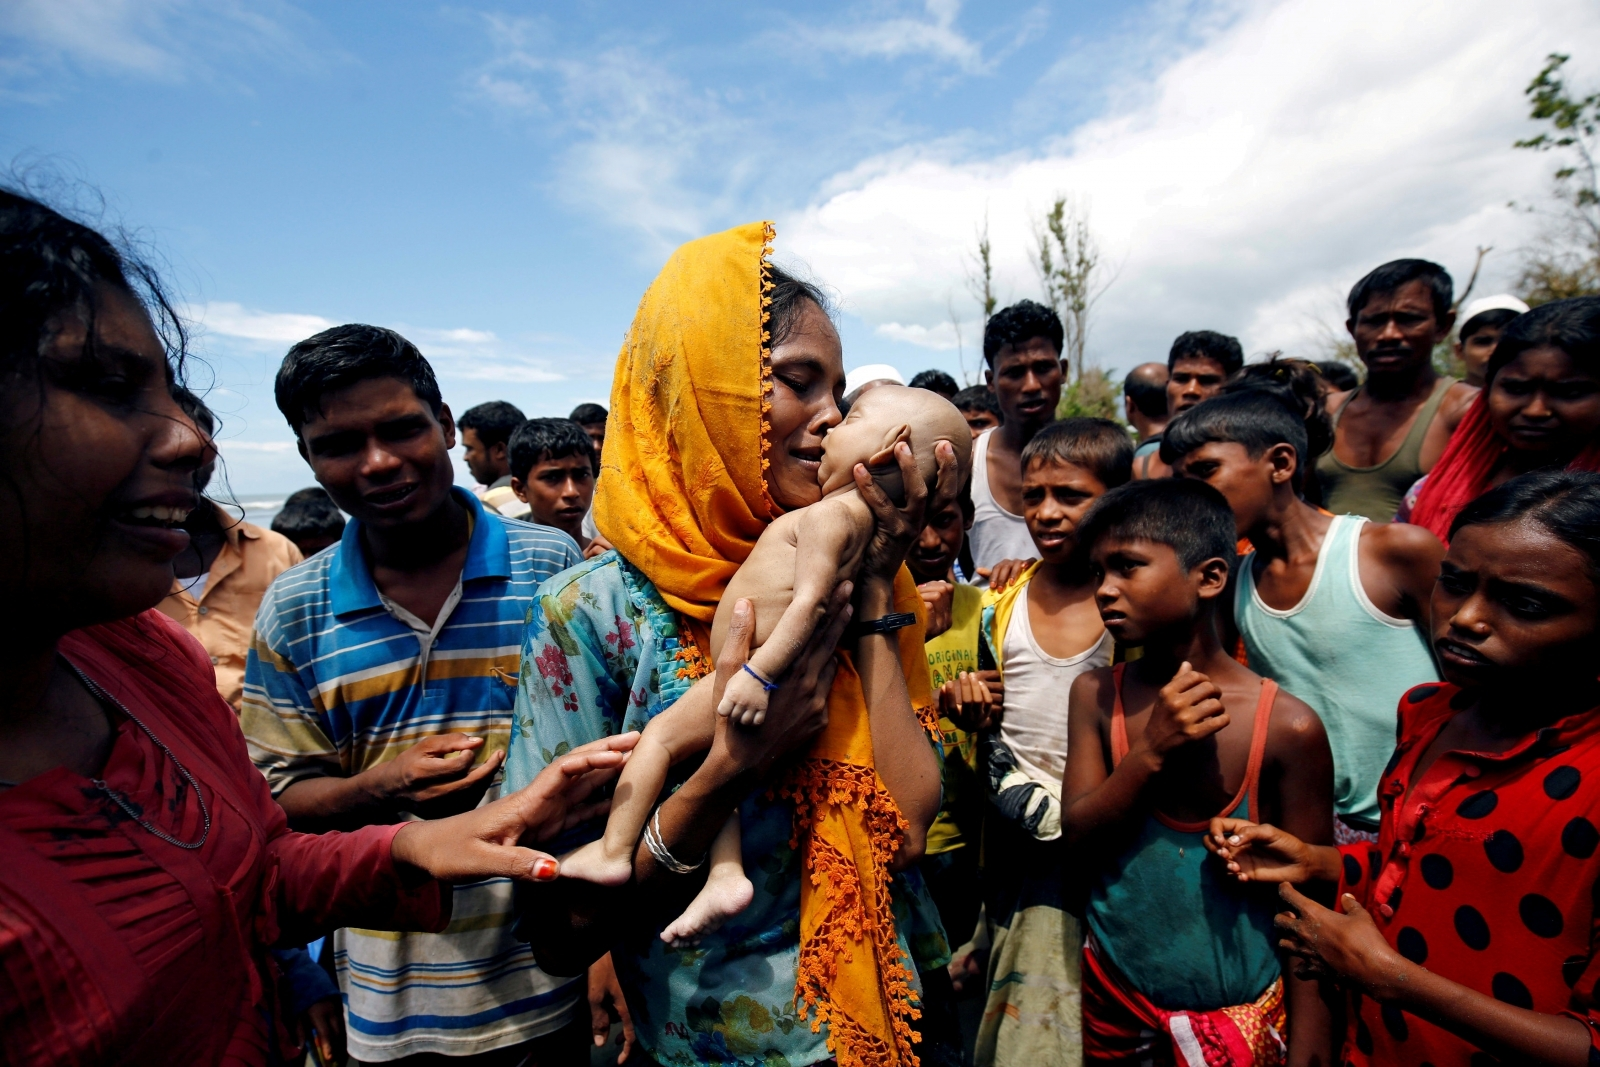 Myanmar security forces took part in killing 10 Rohingya, says army